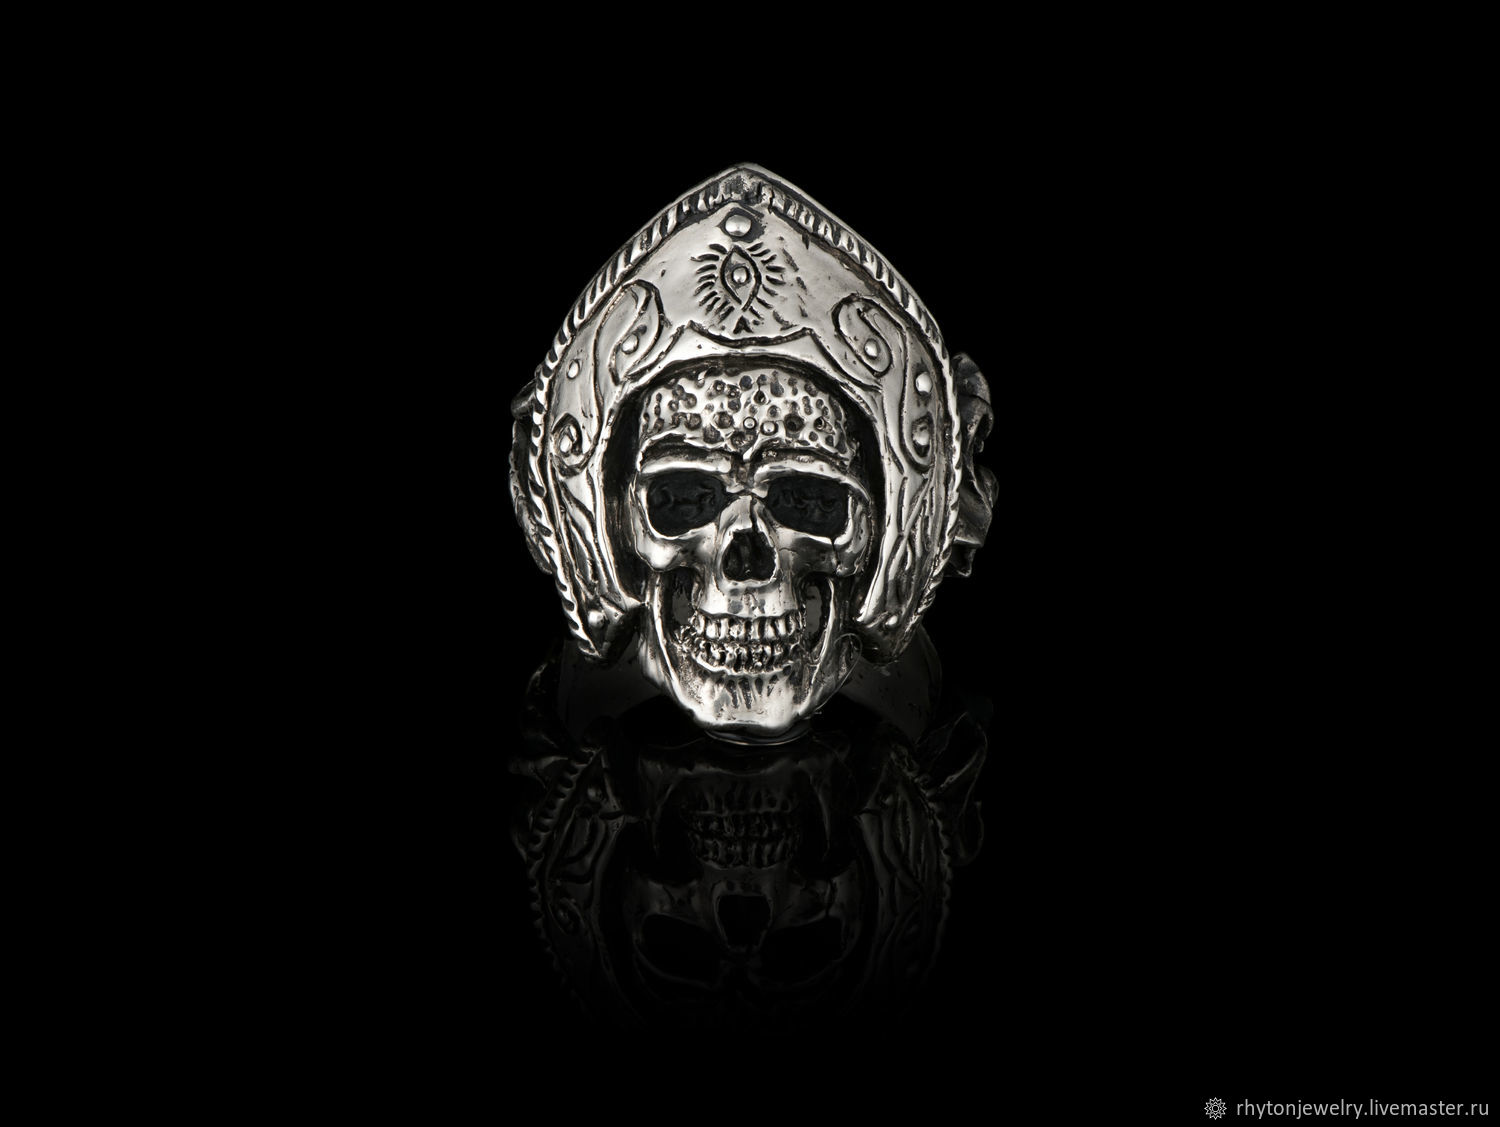 The skull ring 'From Russia with Love', Rings, Kostroma,  Фото №1